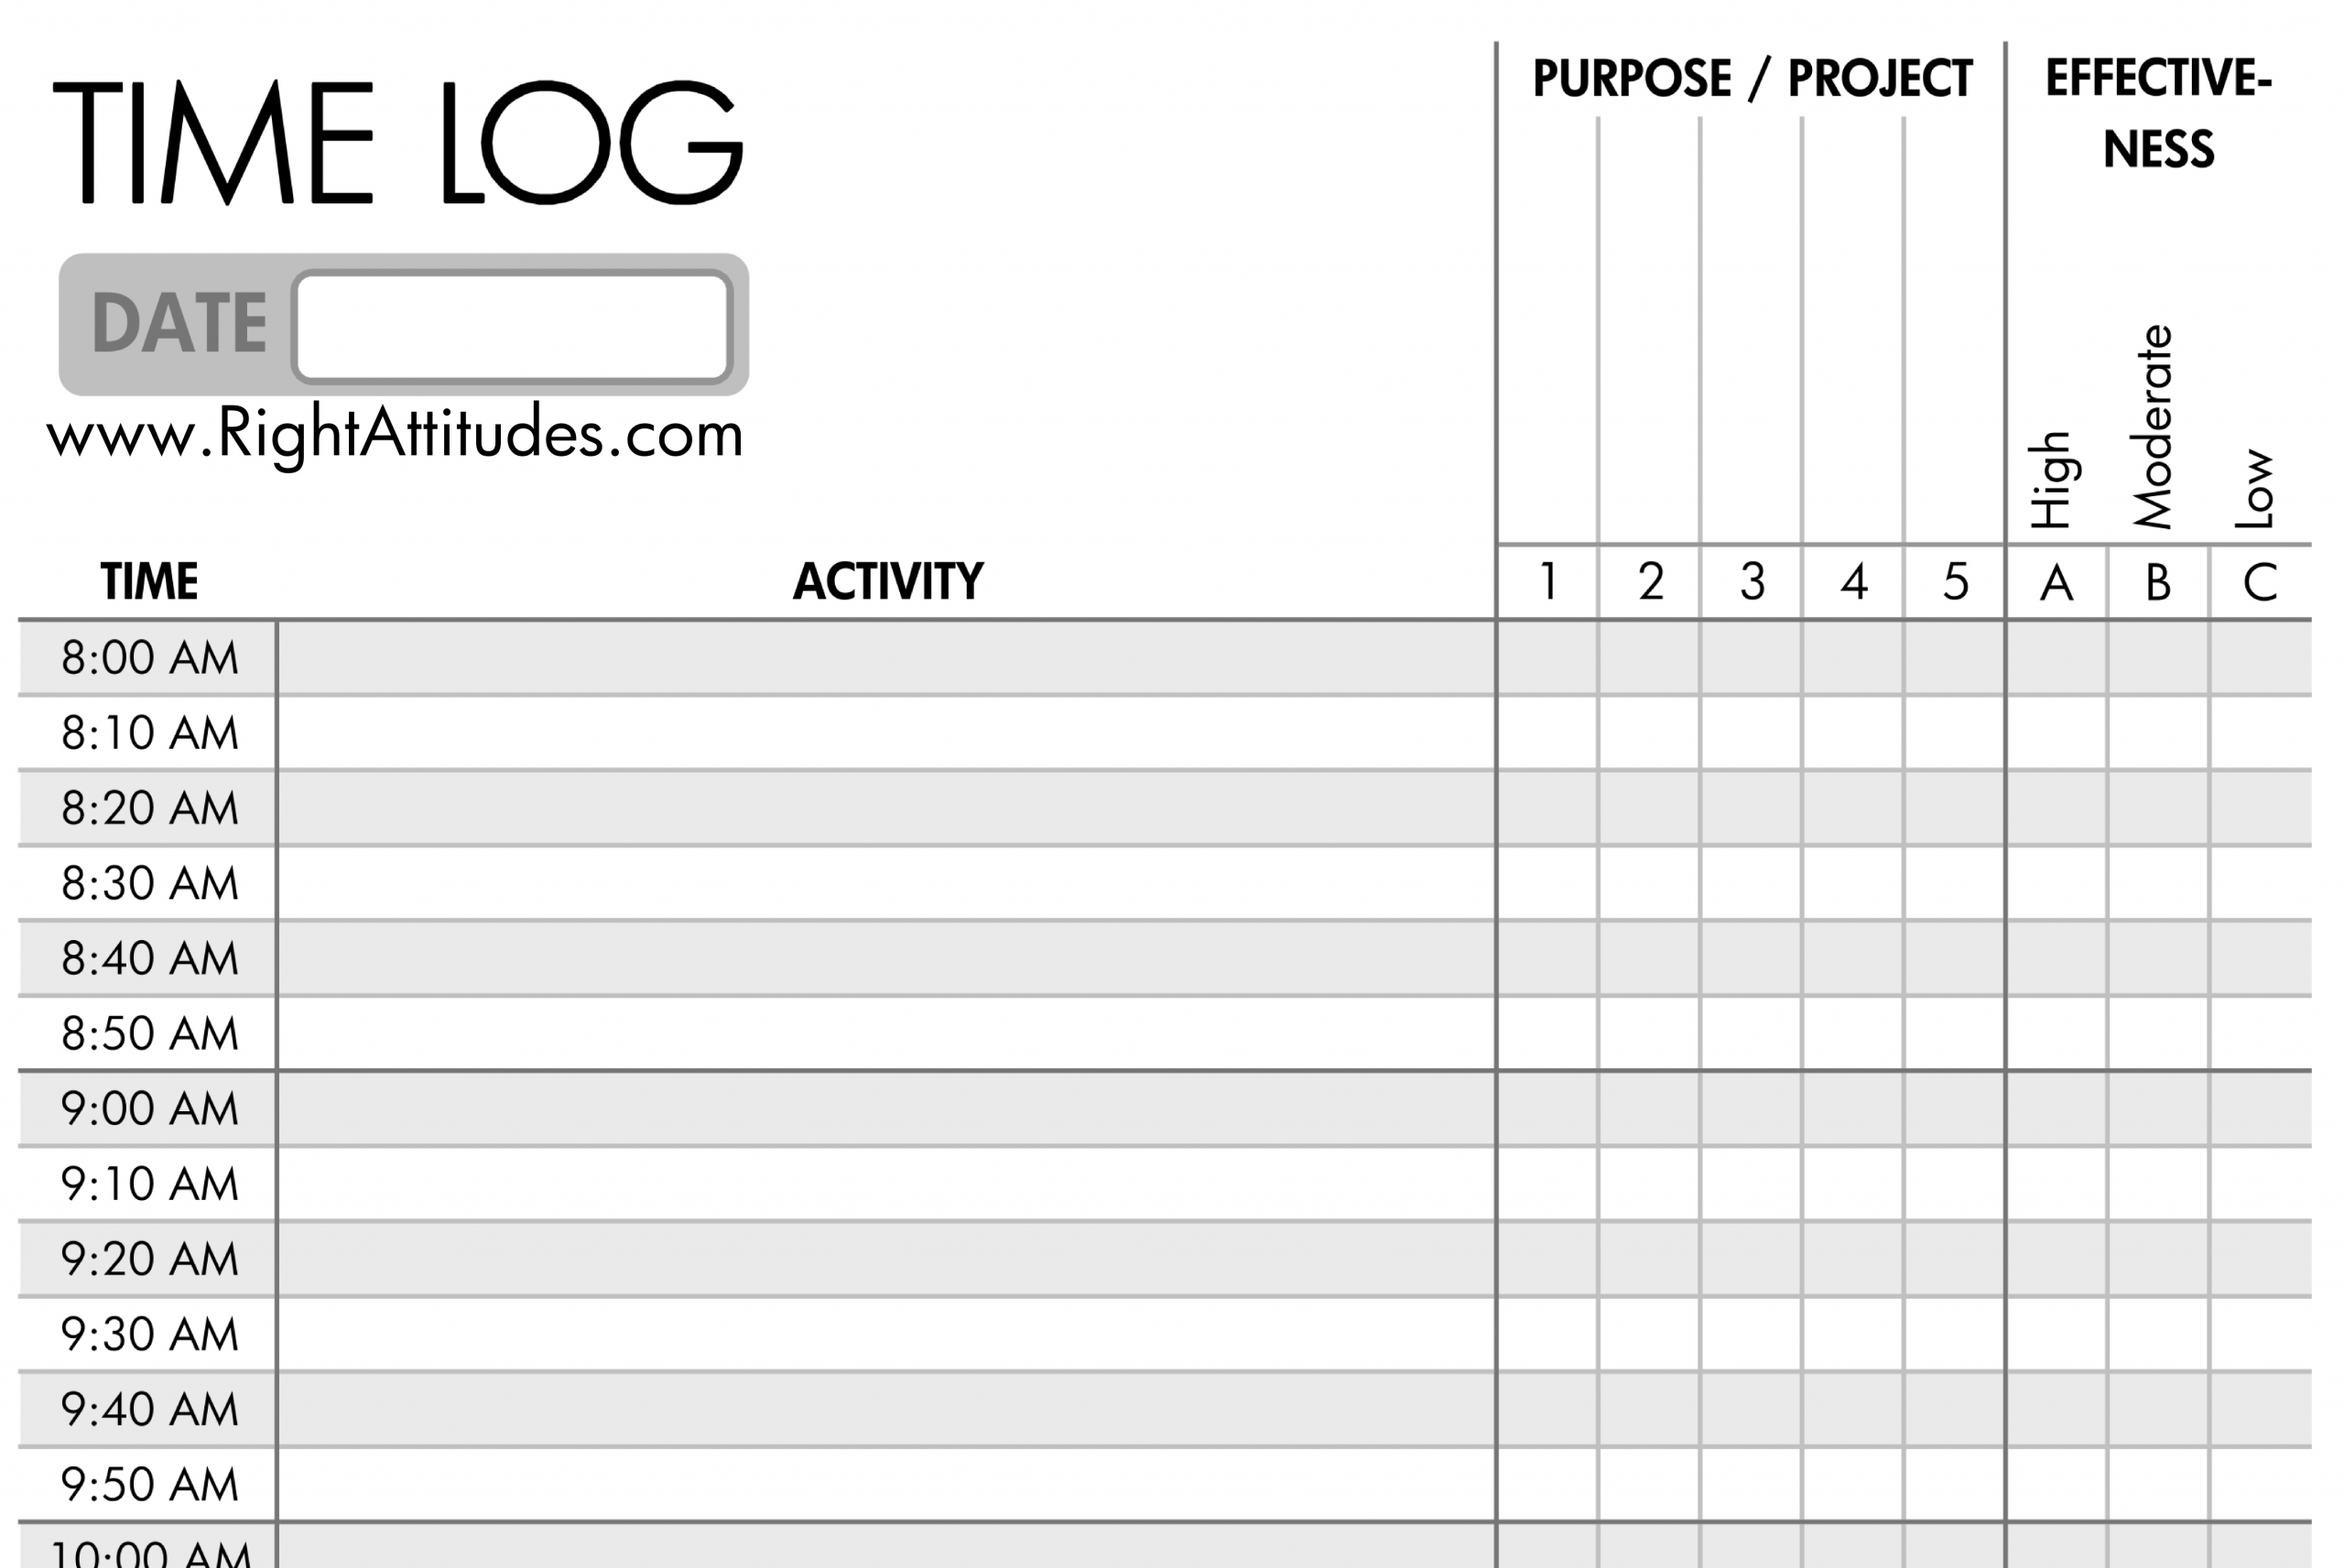 14 Best Images Of Time In 15 Minute Increments Worksheet - Work Time Log Template, 15 Minute